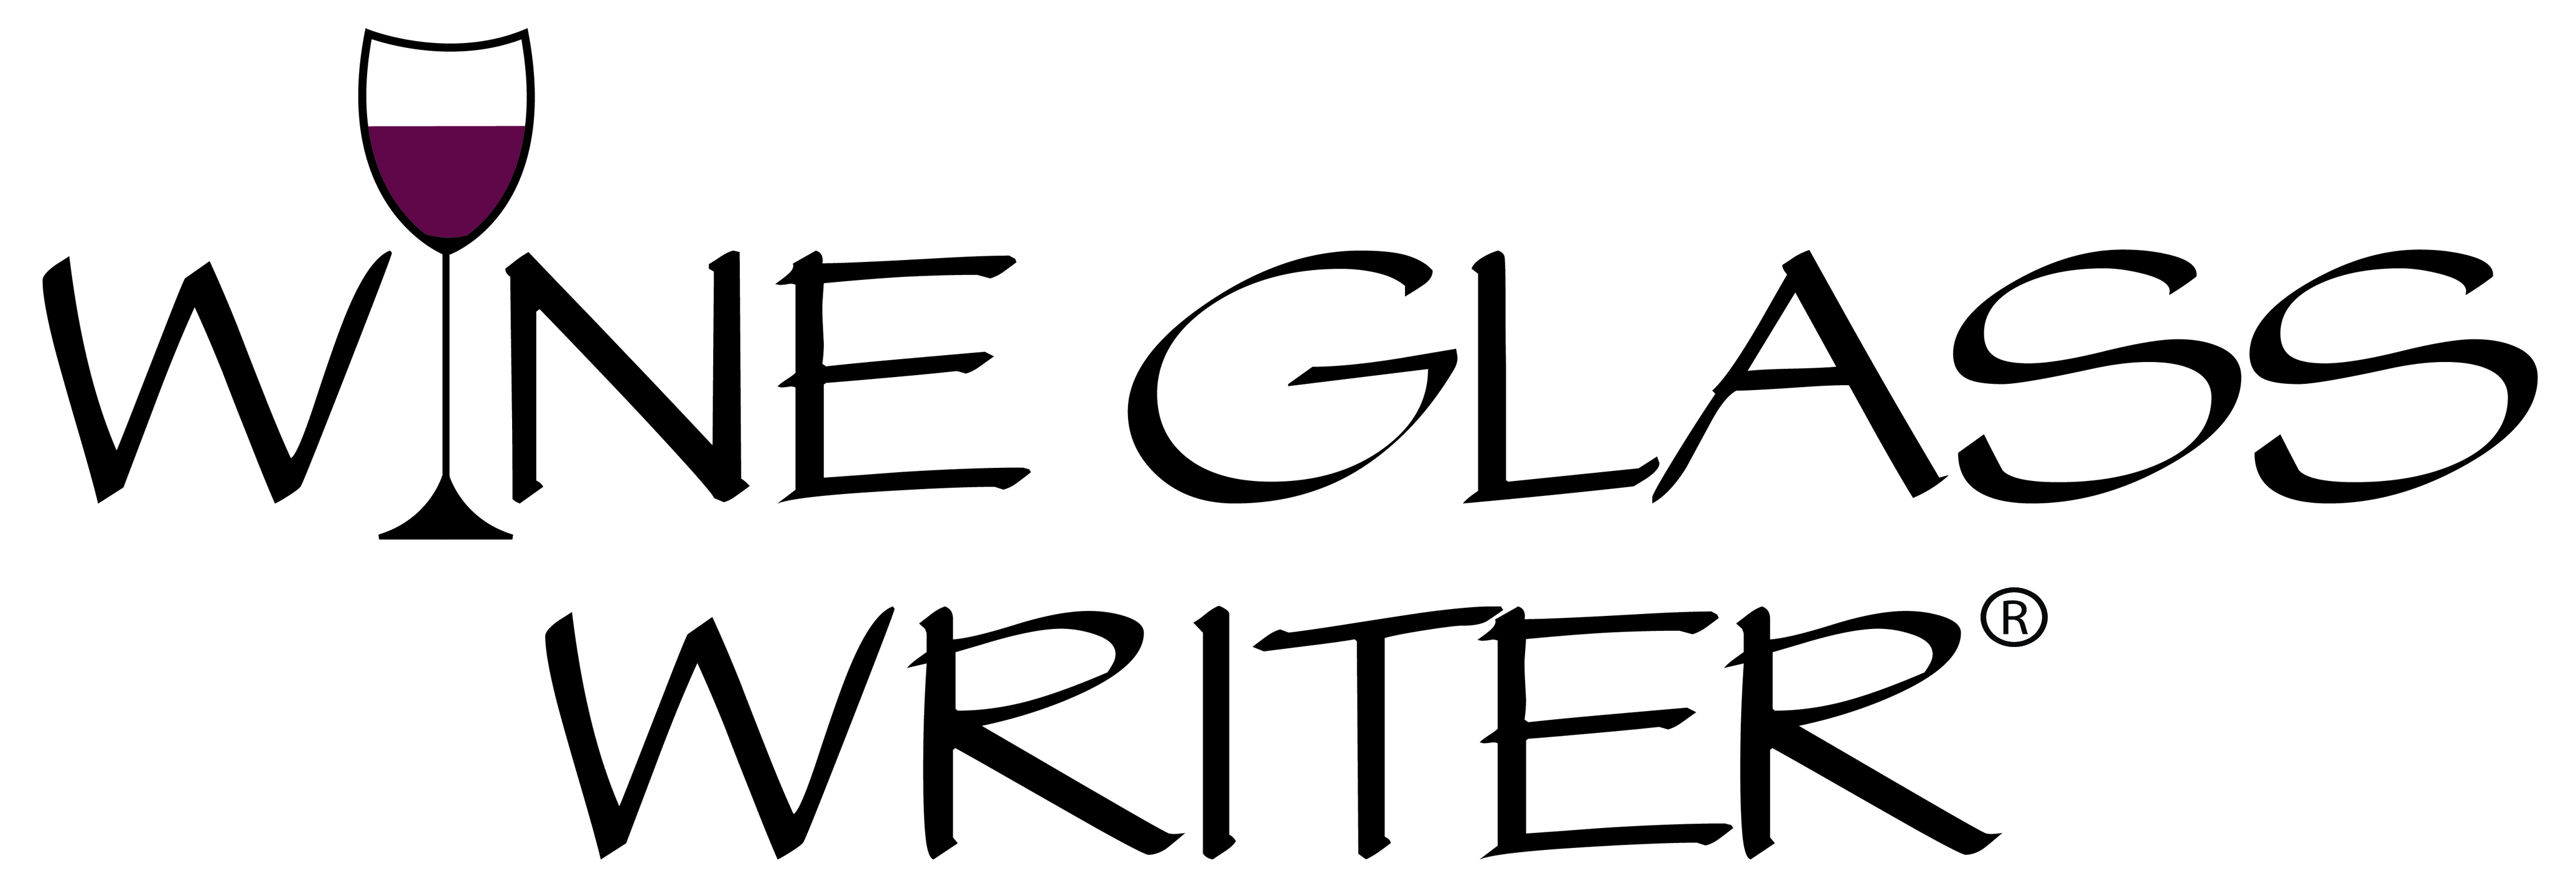 wine-glass-writer